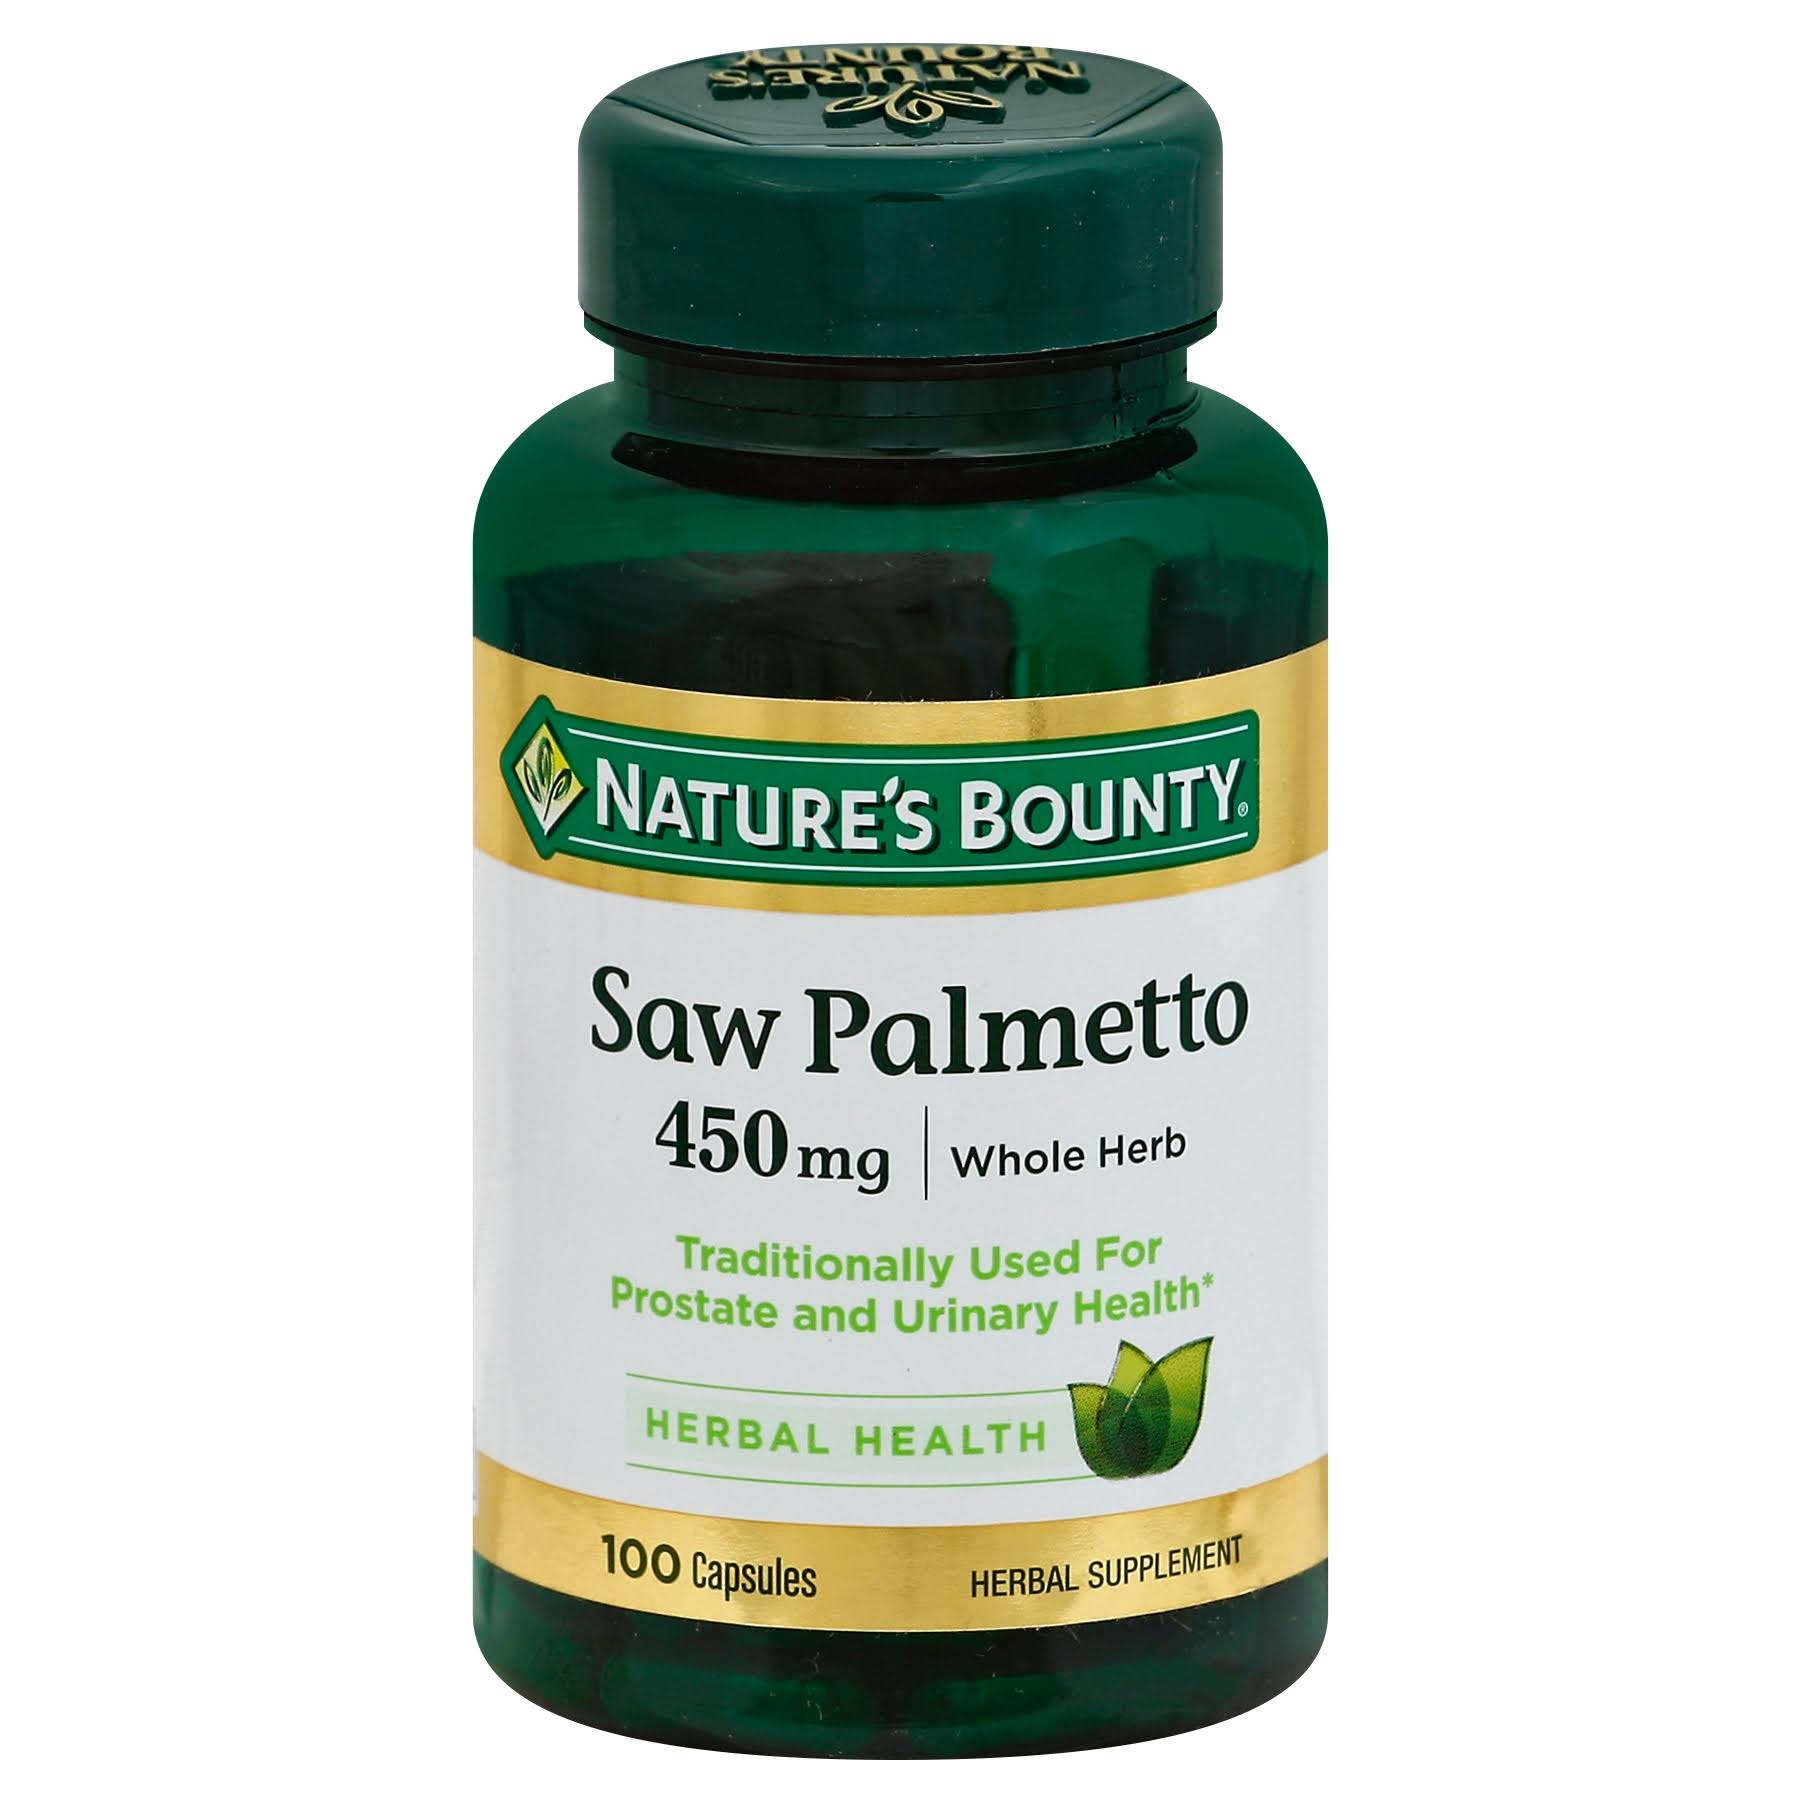 Nature's Bounty Saw Palmetto Supplement - 450mg, 100 Caps